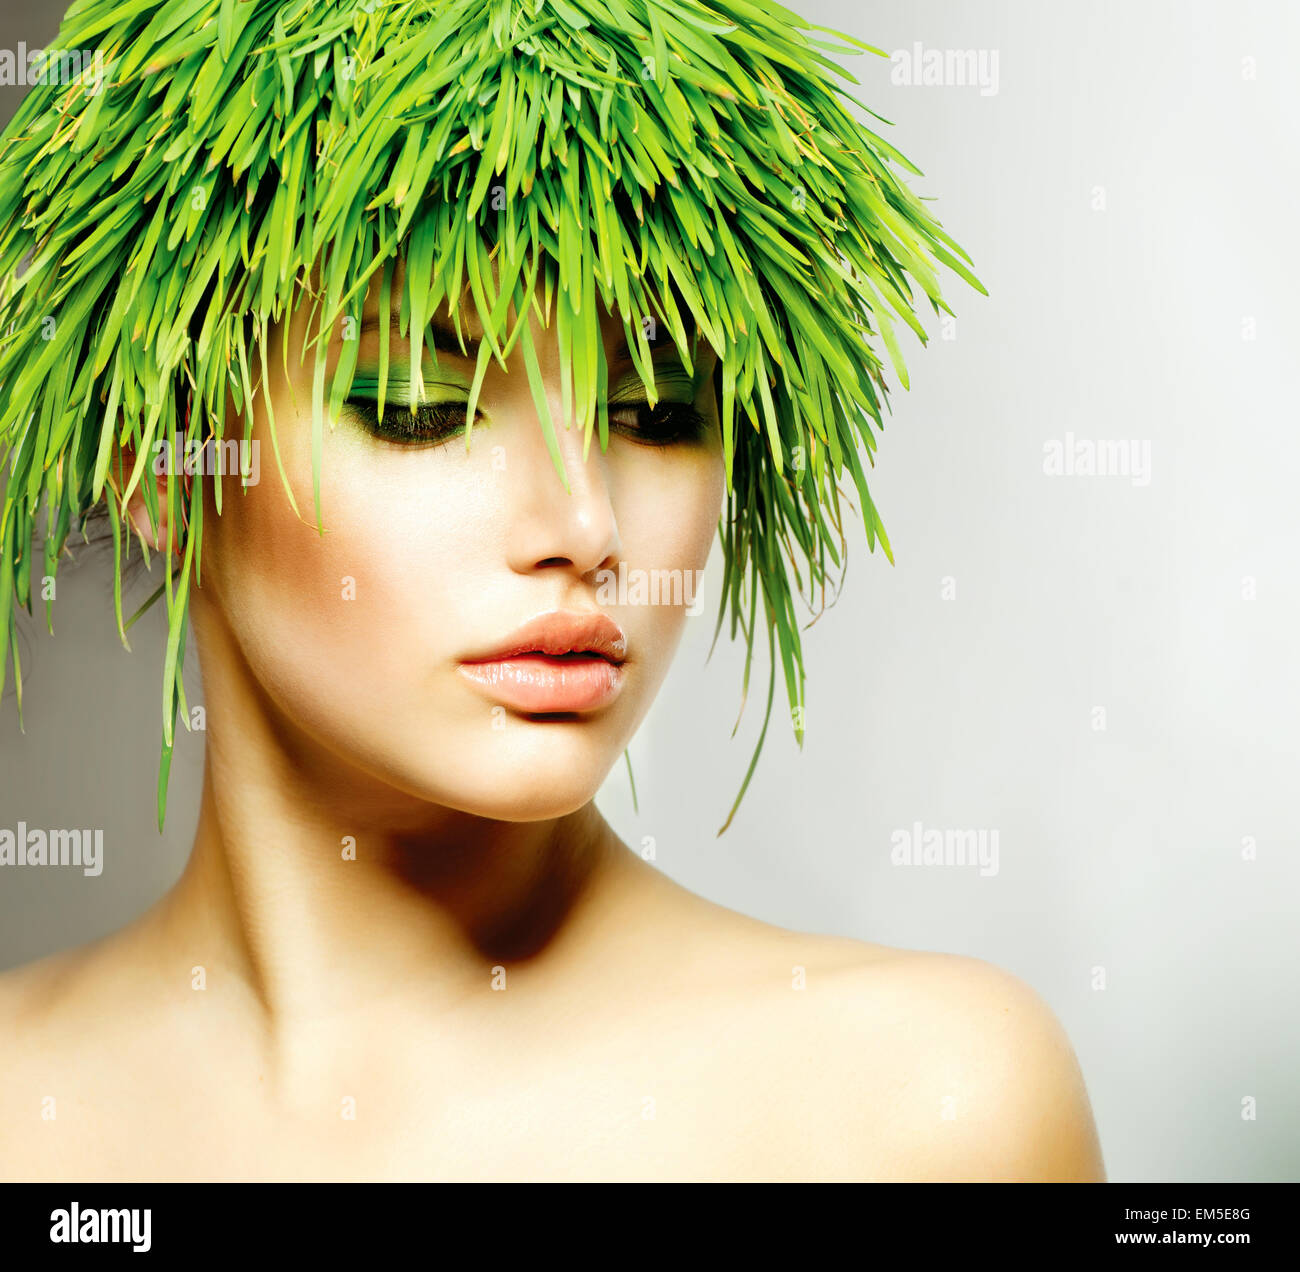 Beauty Spring Woman with Fresh Green Grass Hair - Stock Image